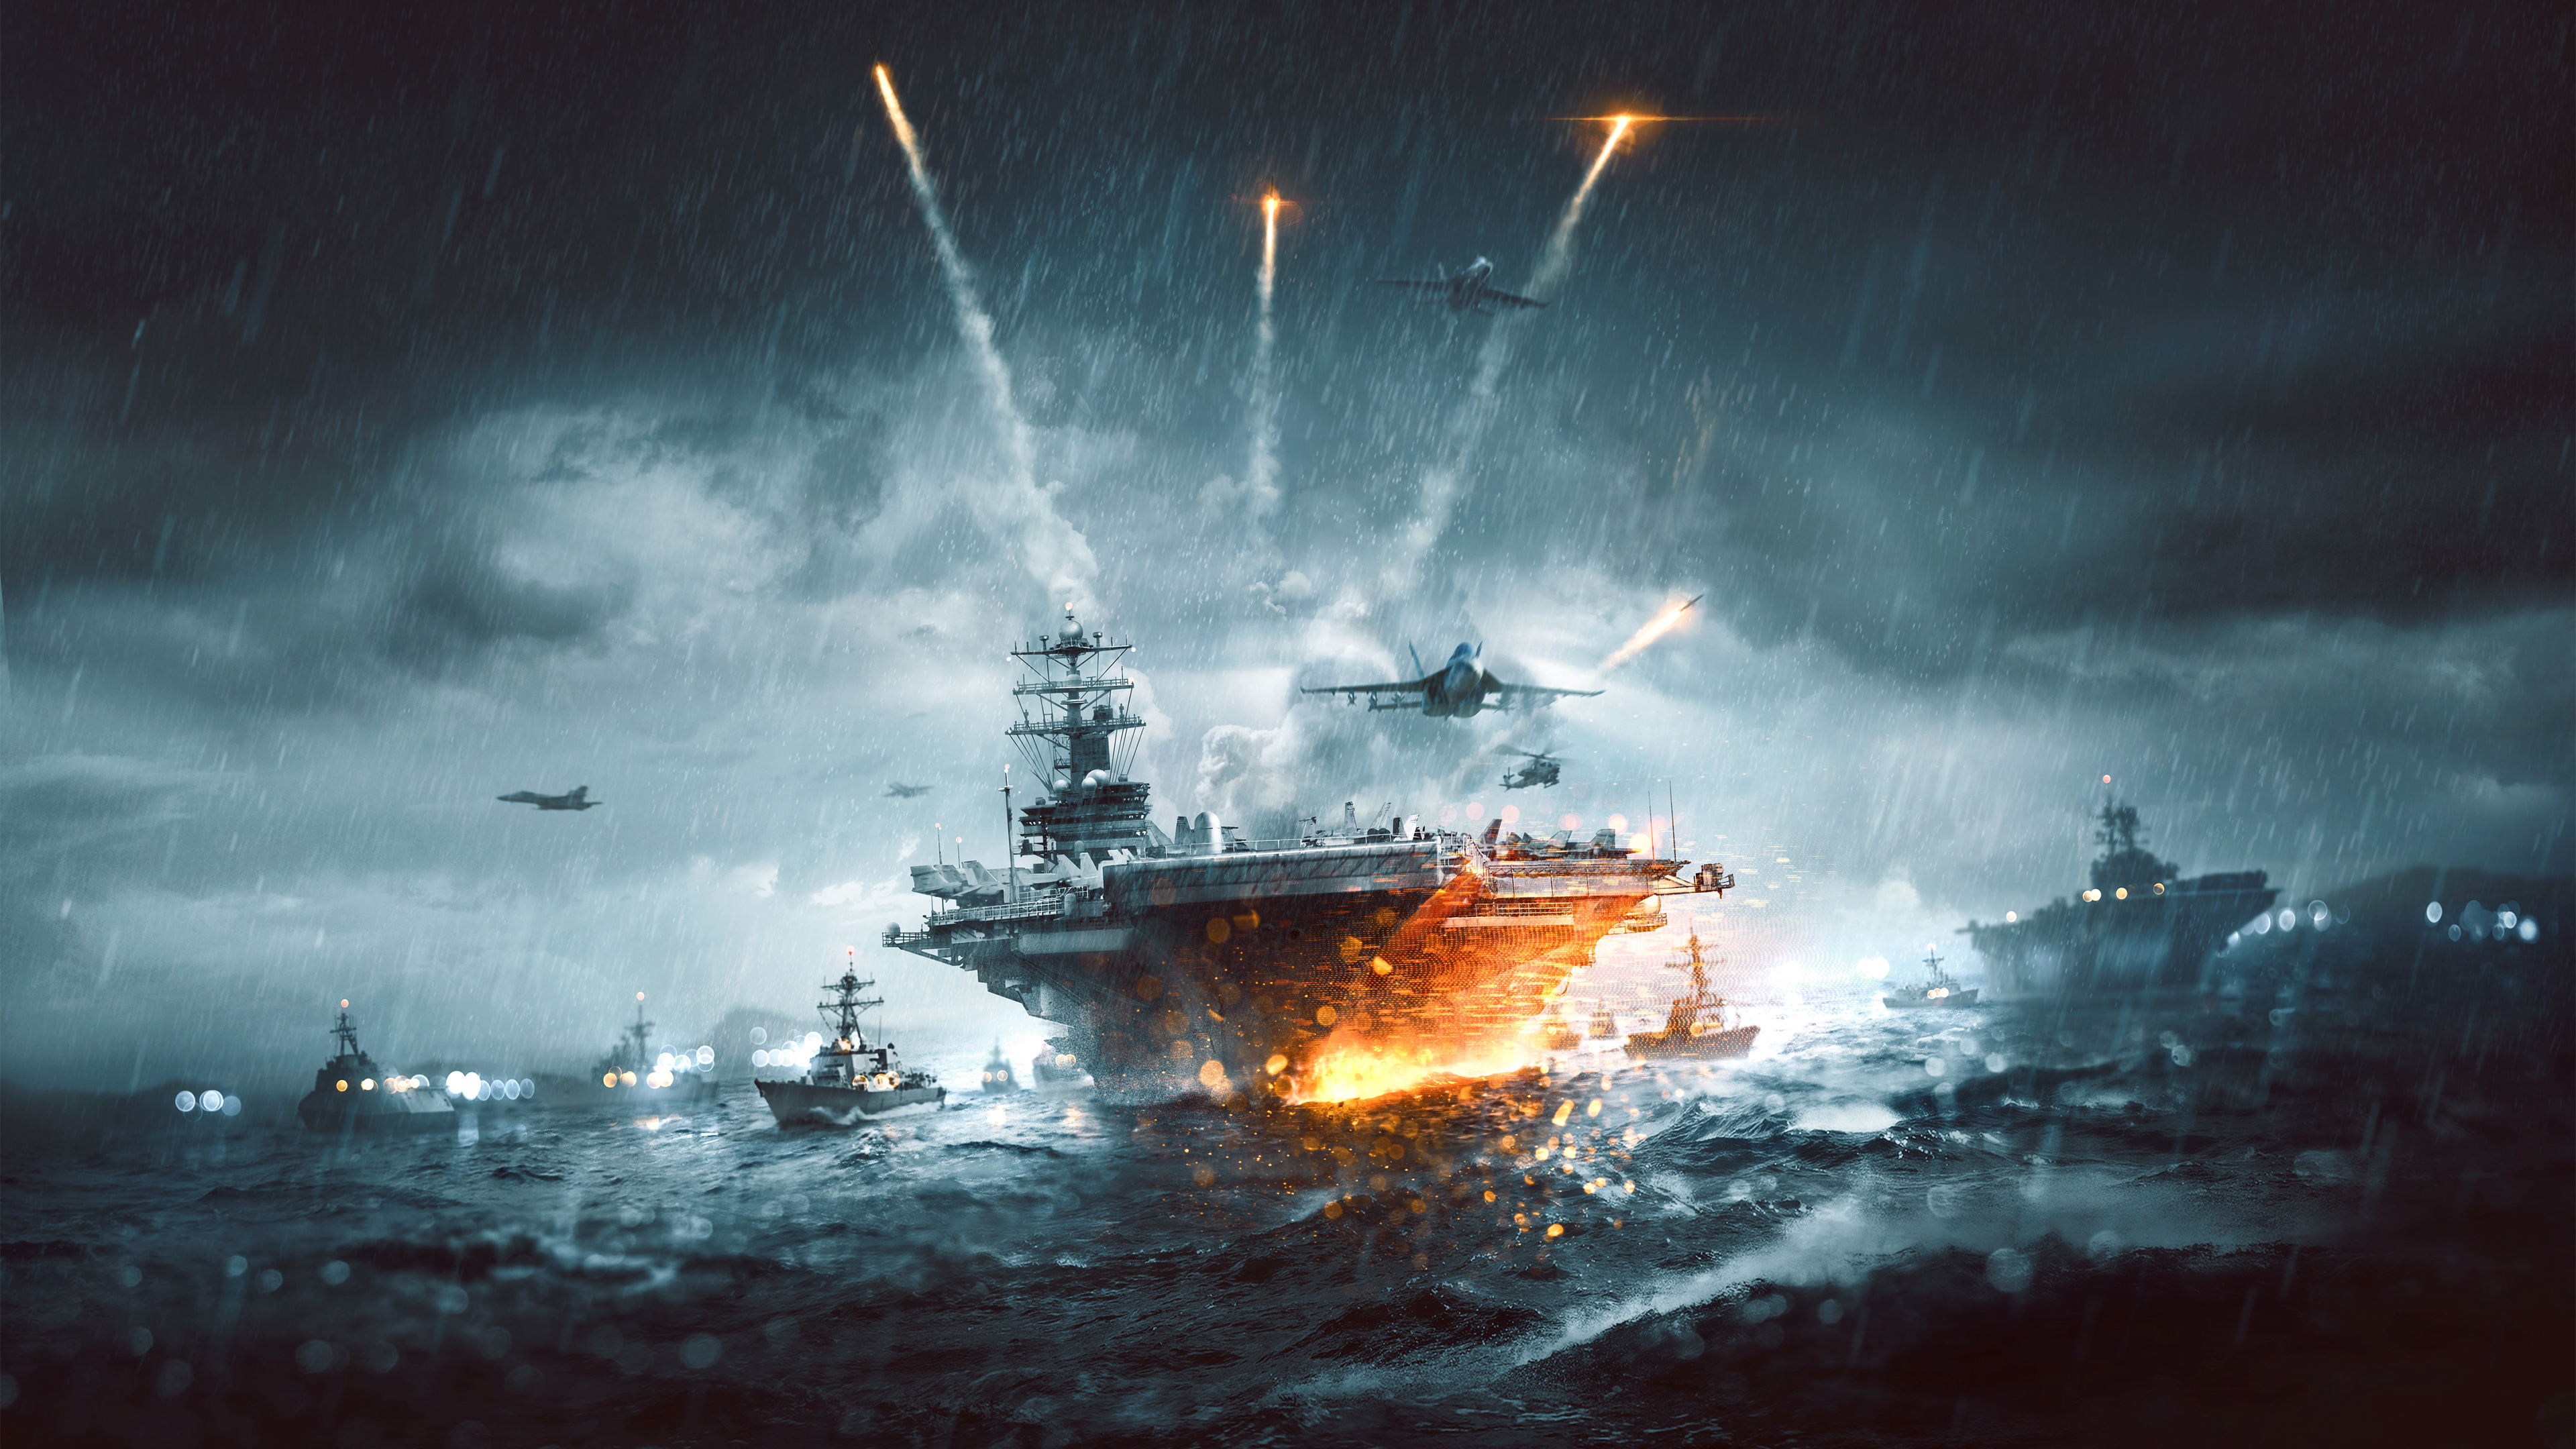 Battlefield 4 Backgrounds Pictures Images